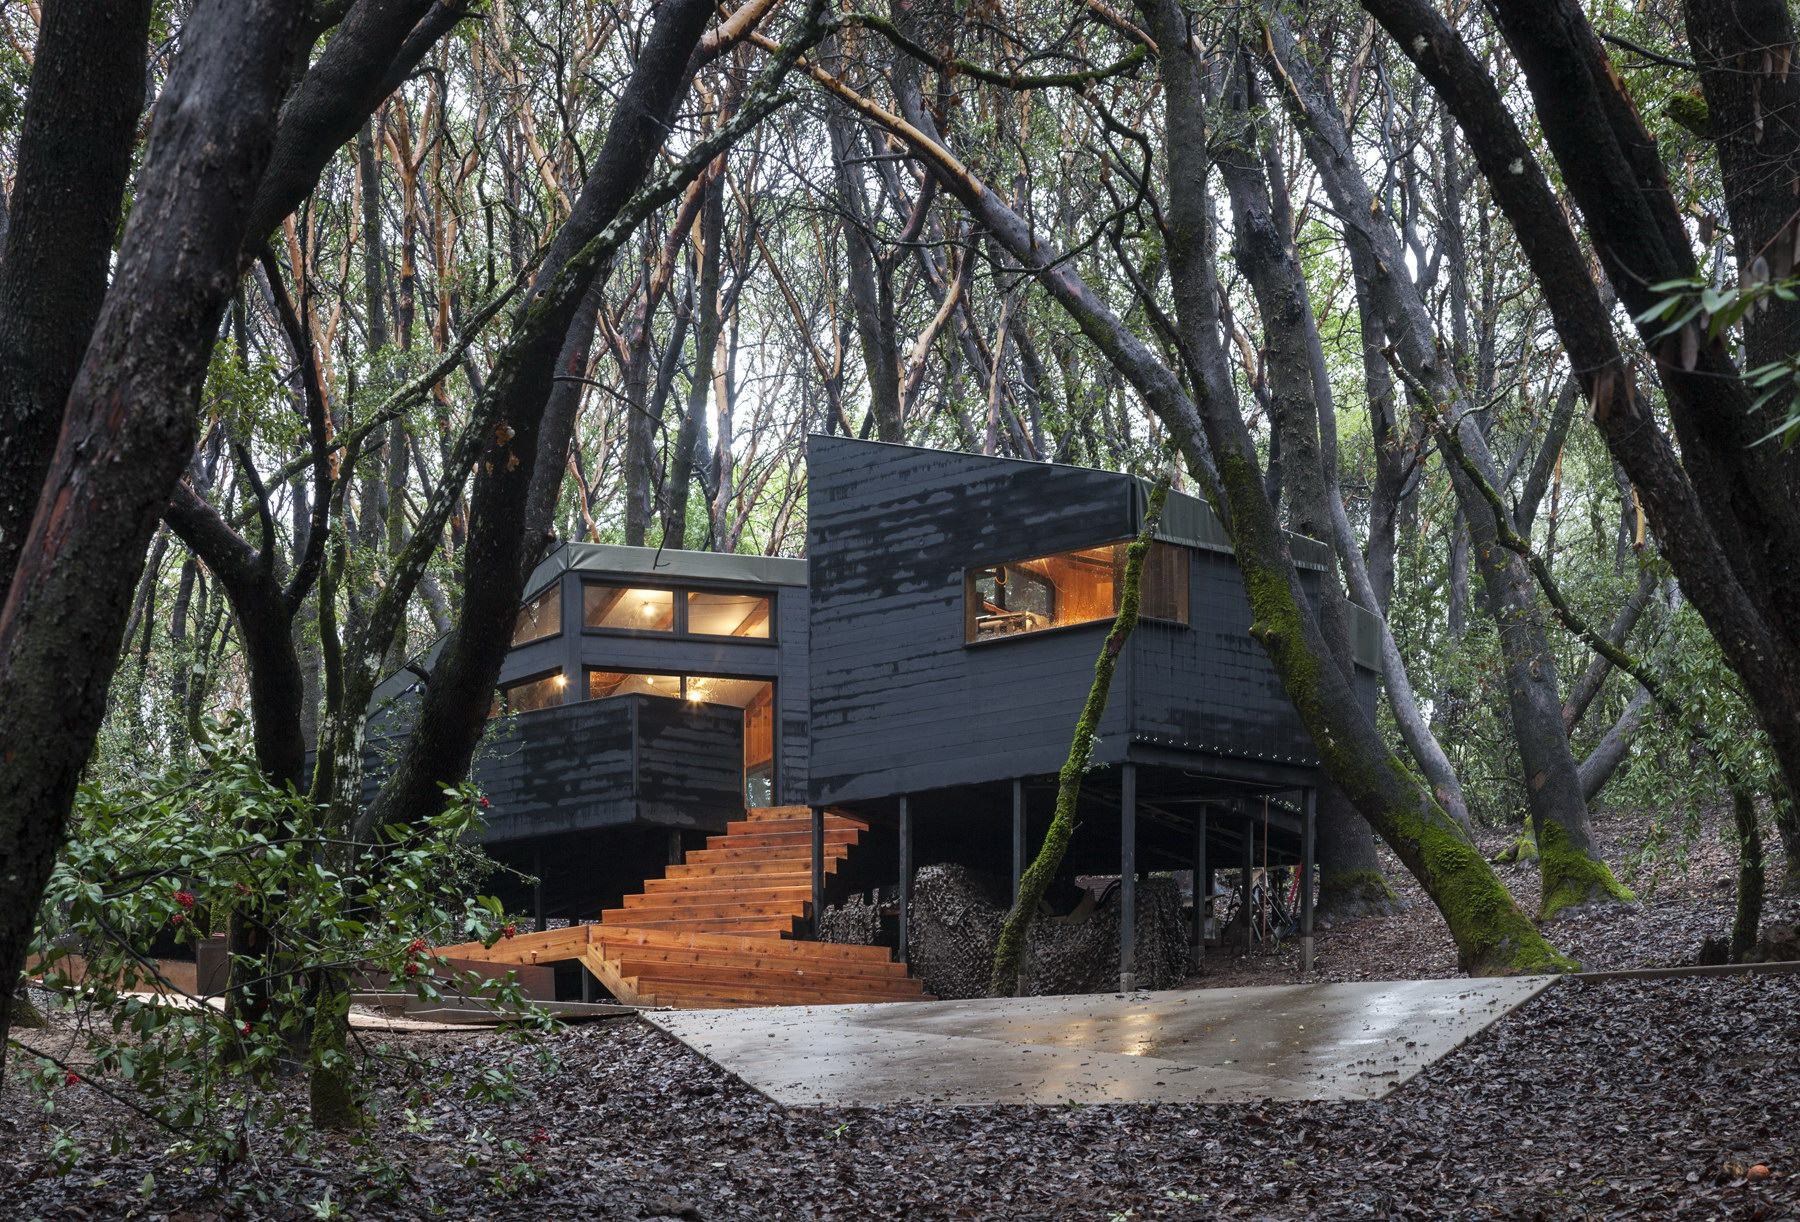 Forest House Complex Of Nine One Room Cabins By Envelope A D